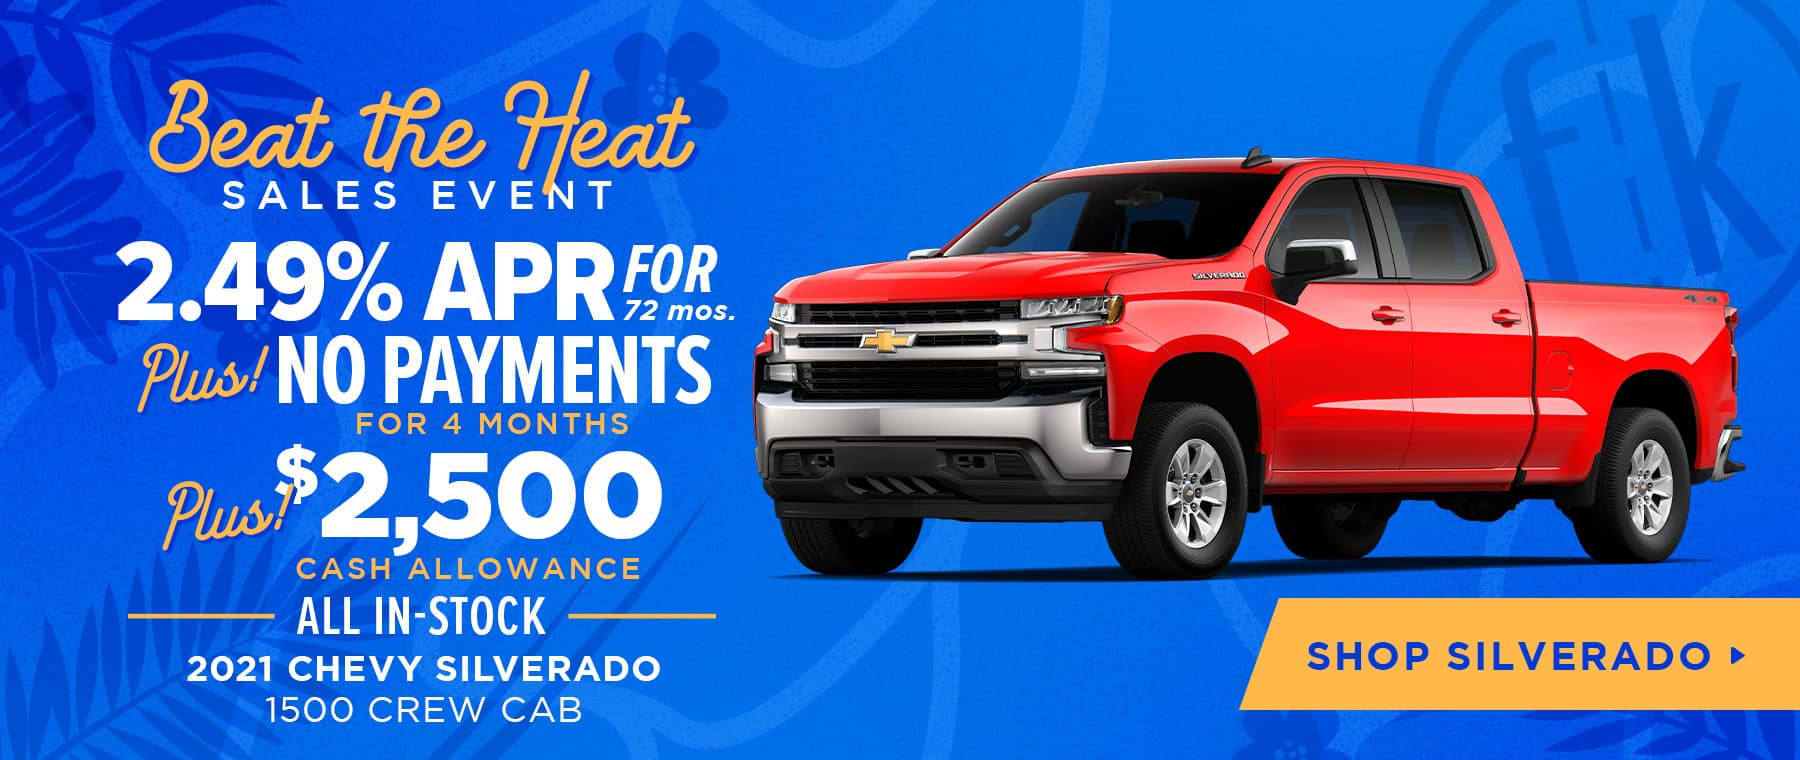 2.49% for 72 mos. PLUS No Payments for 4 Months PLUS $2,500 Cash Allowance All In-Stock 2021 Chevy Silverado 1500 Crew Cab